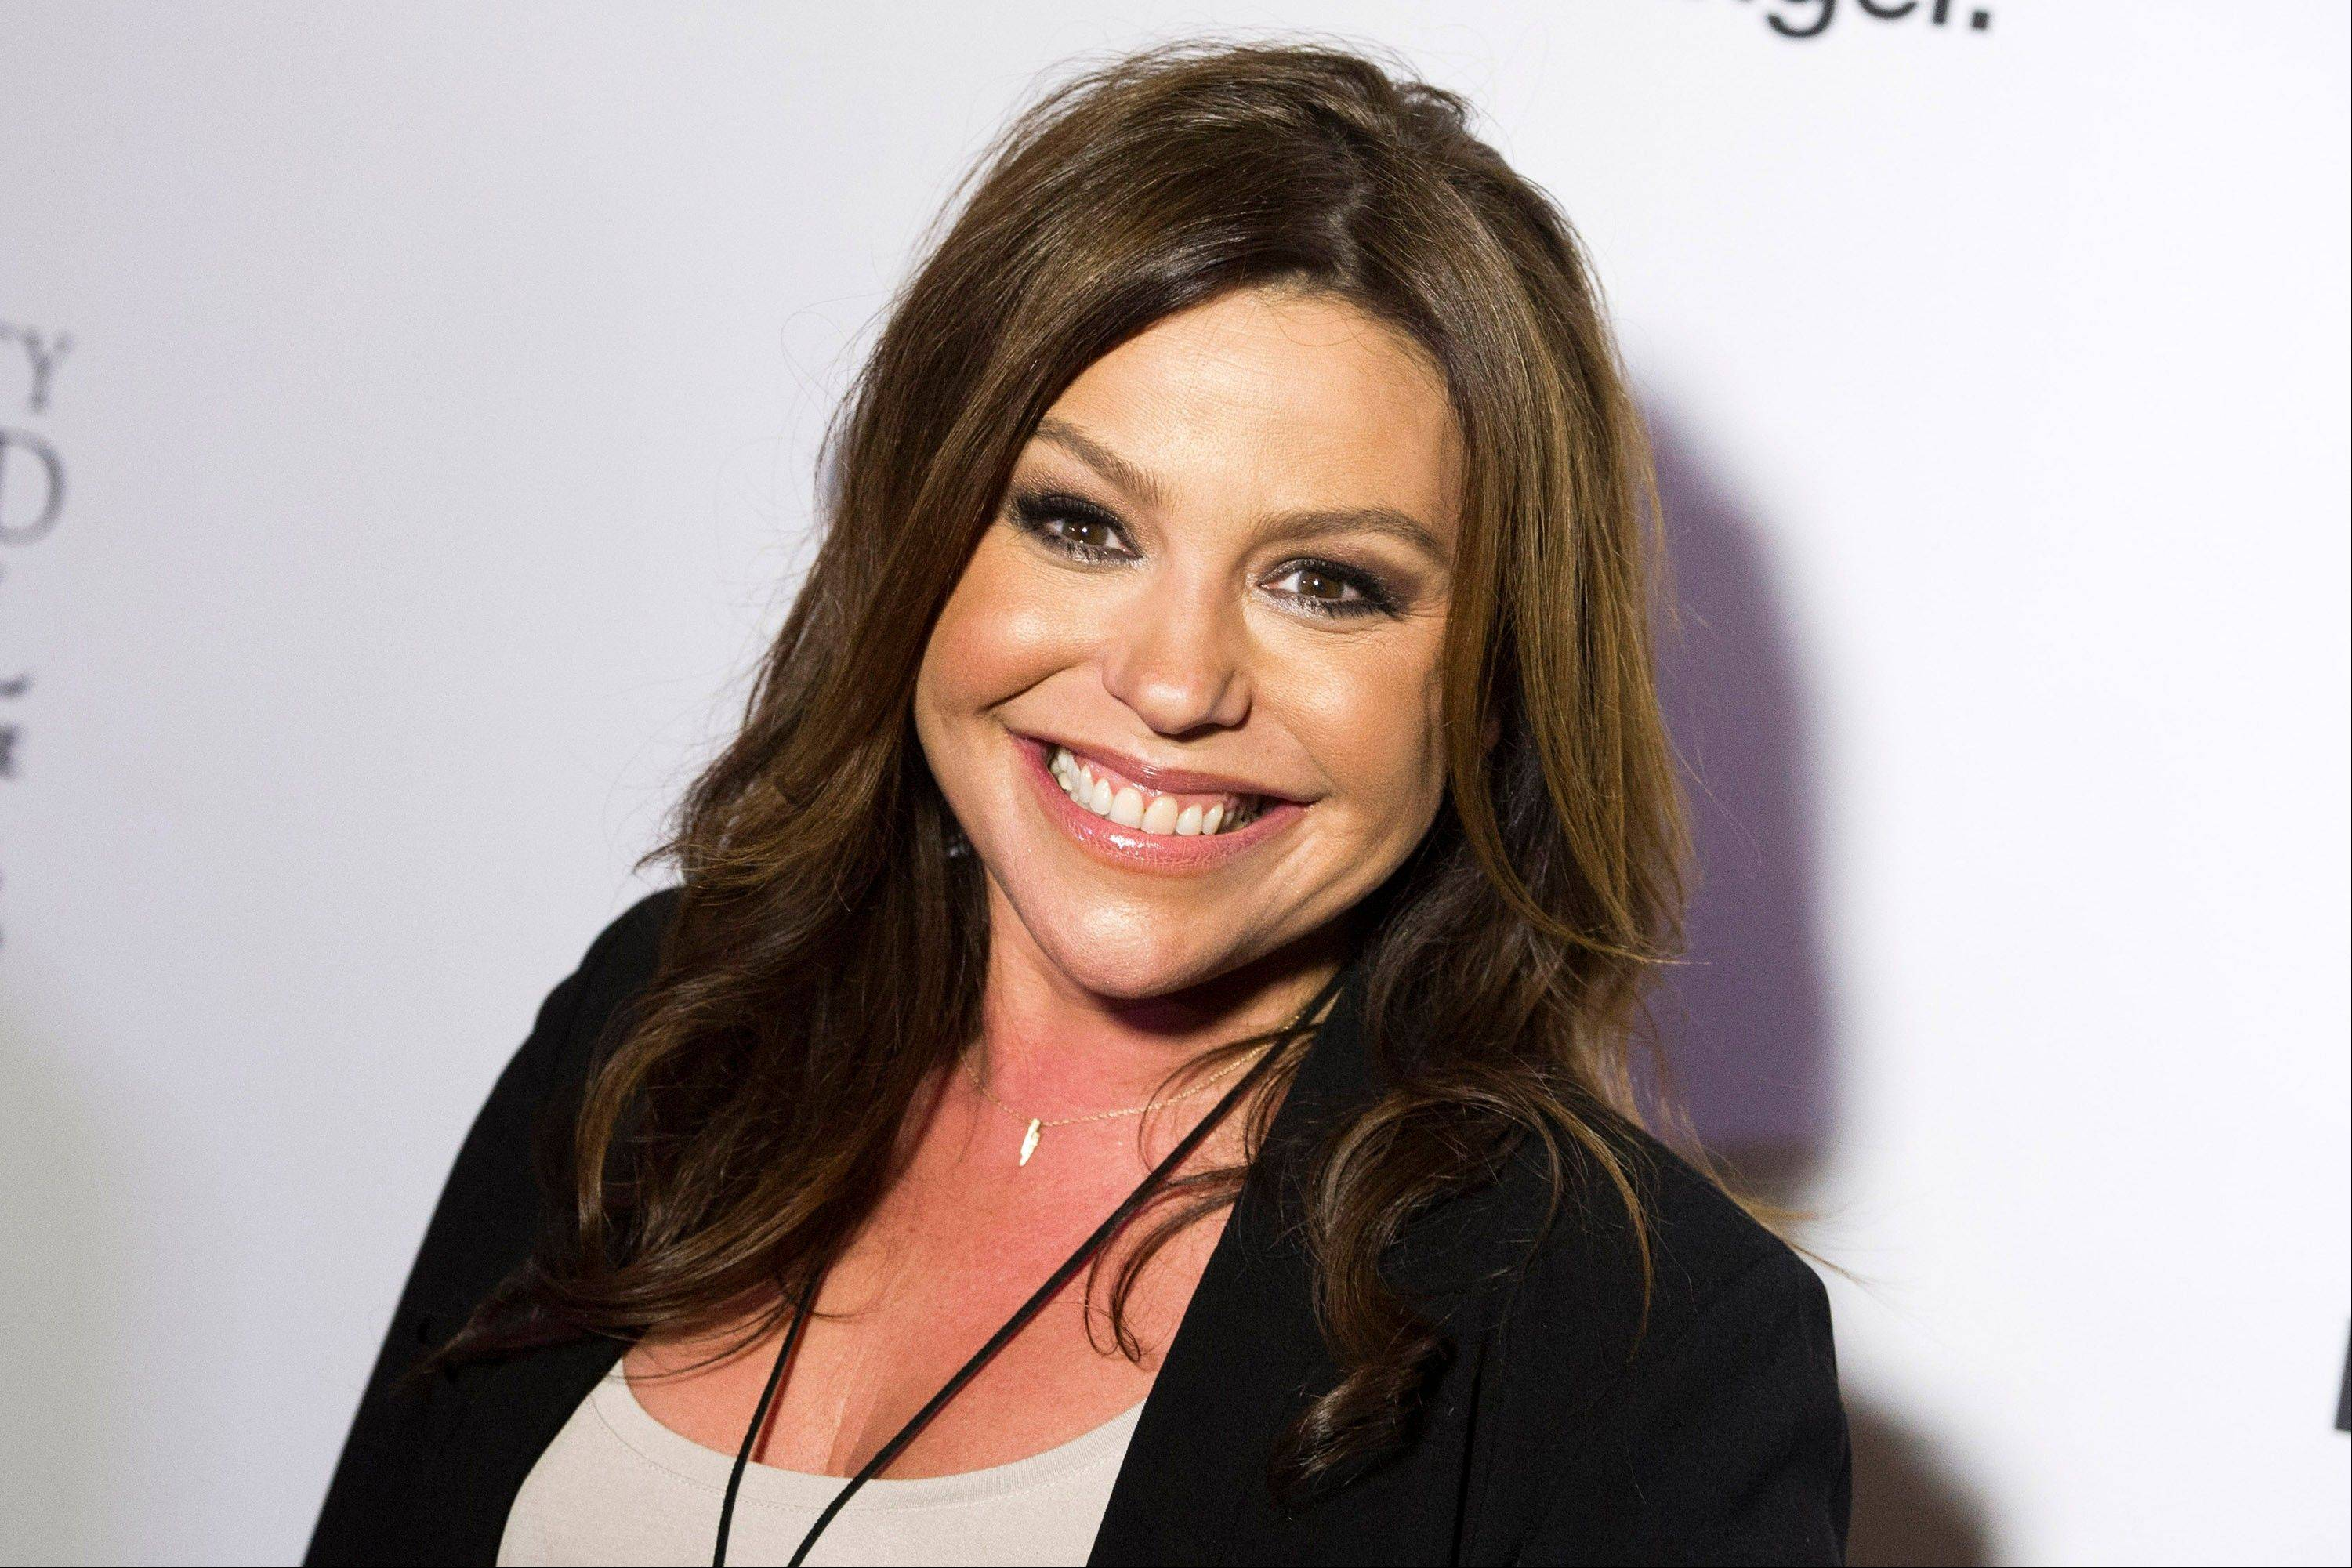 Rachael Ray attends the Food Network's 20th birthday party on Thursday in New York.